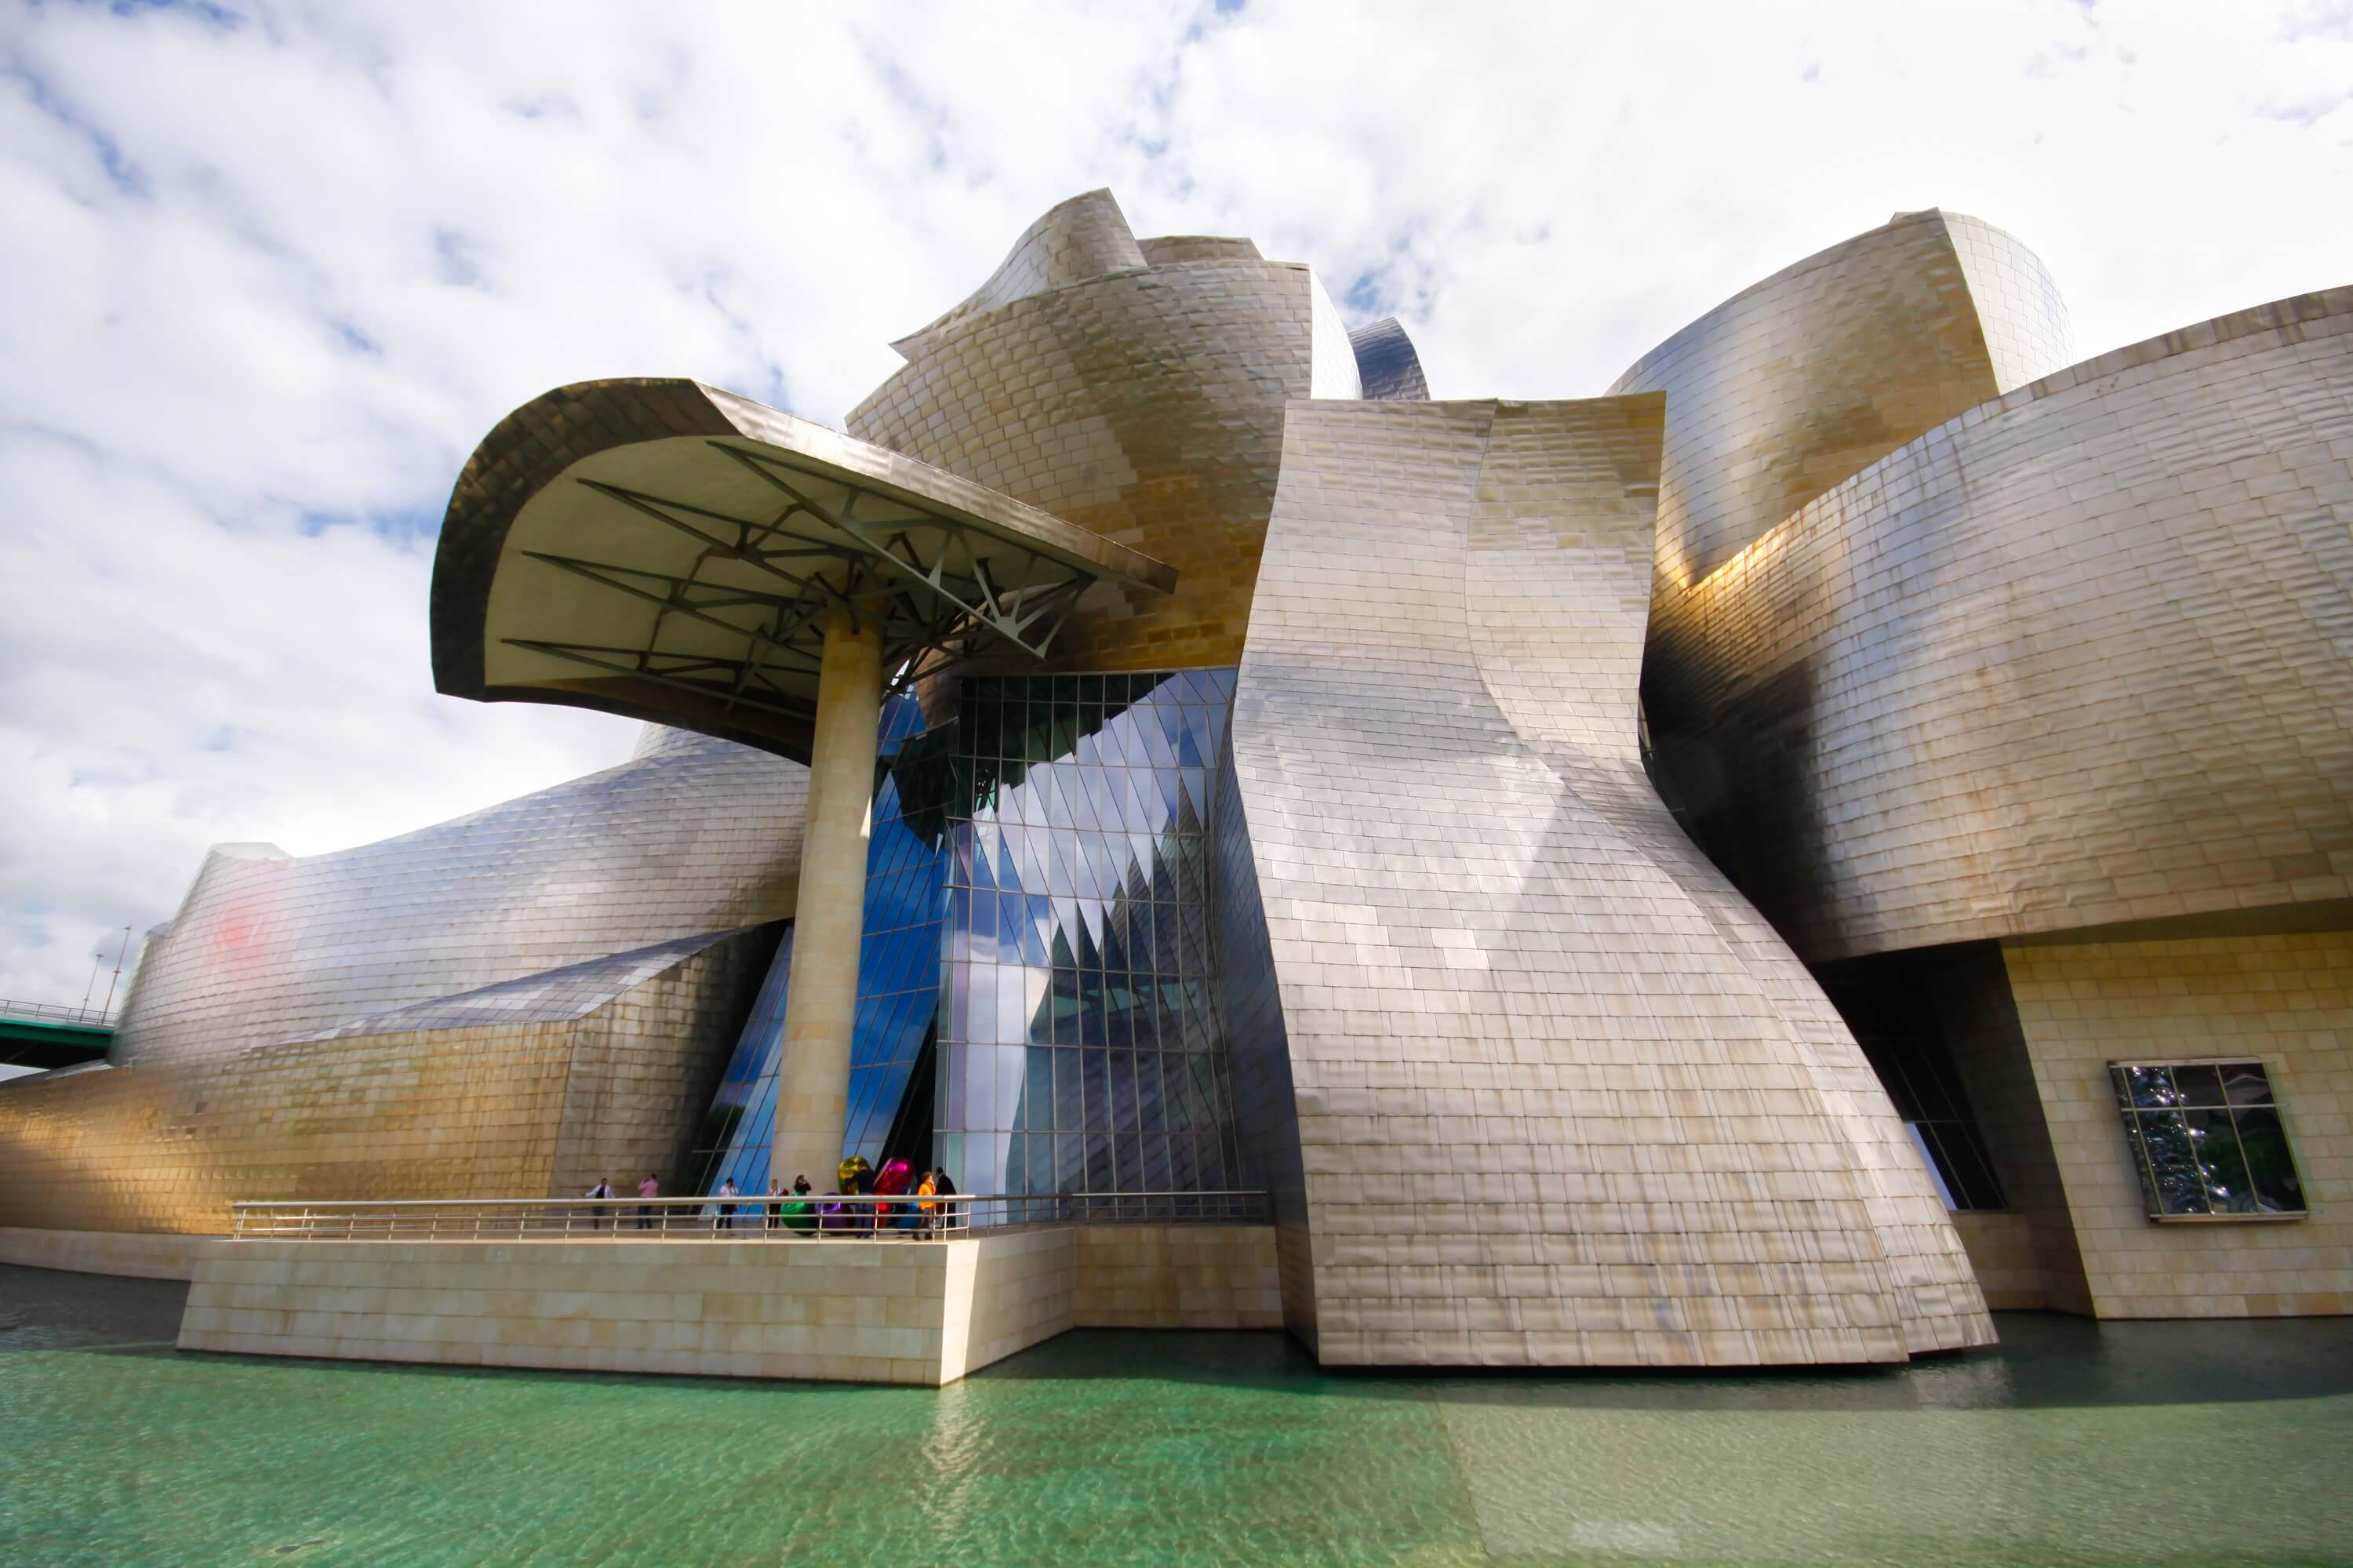 Guggenheim museum in Bilbao - 9 Experiences You Must Have in Spain